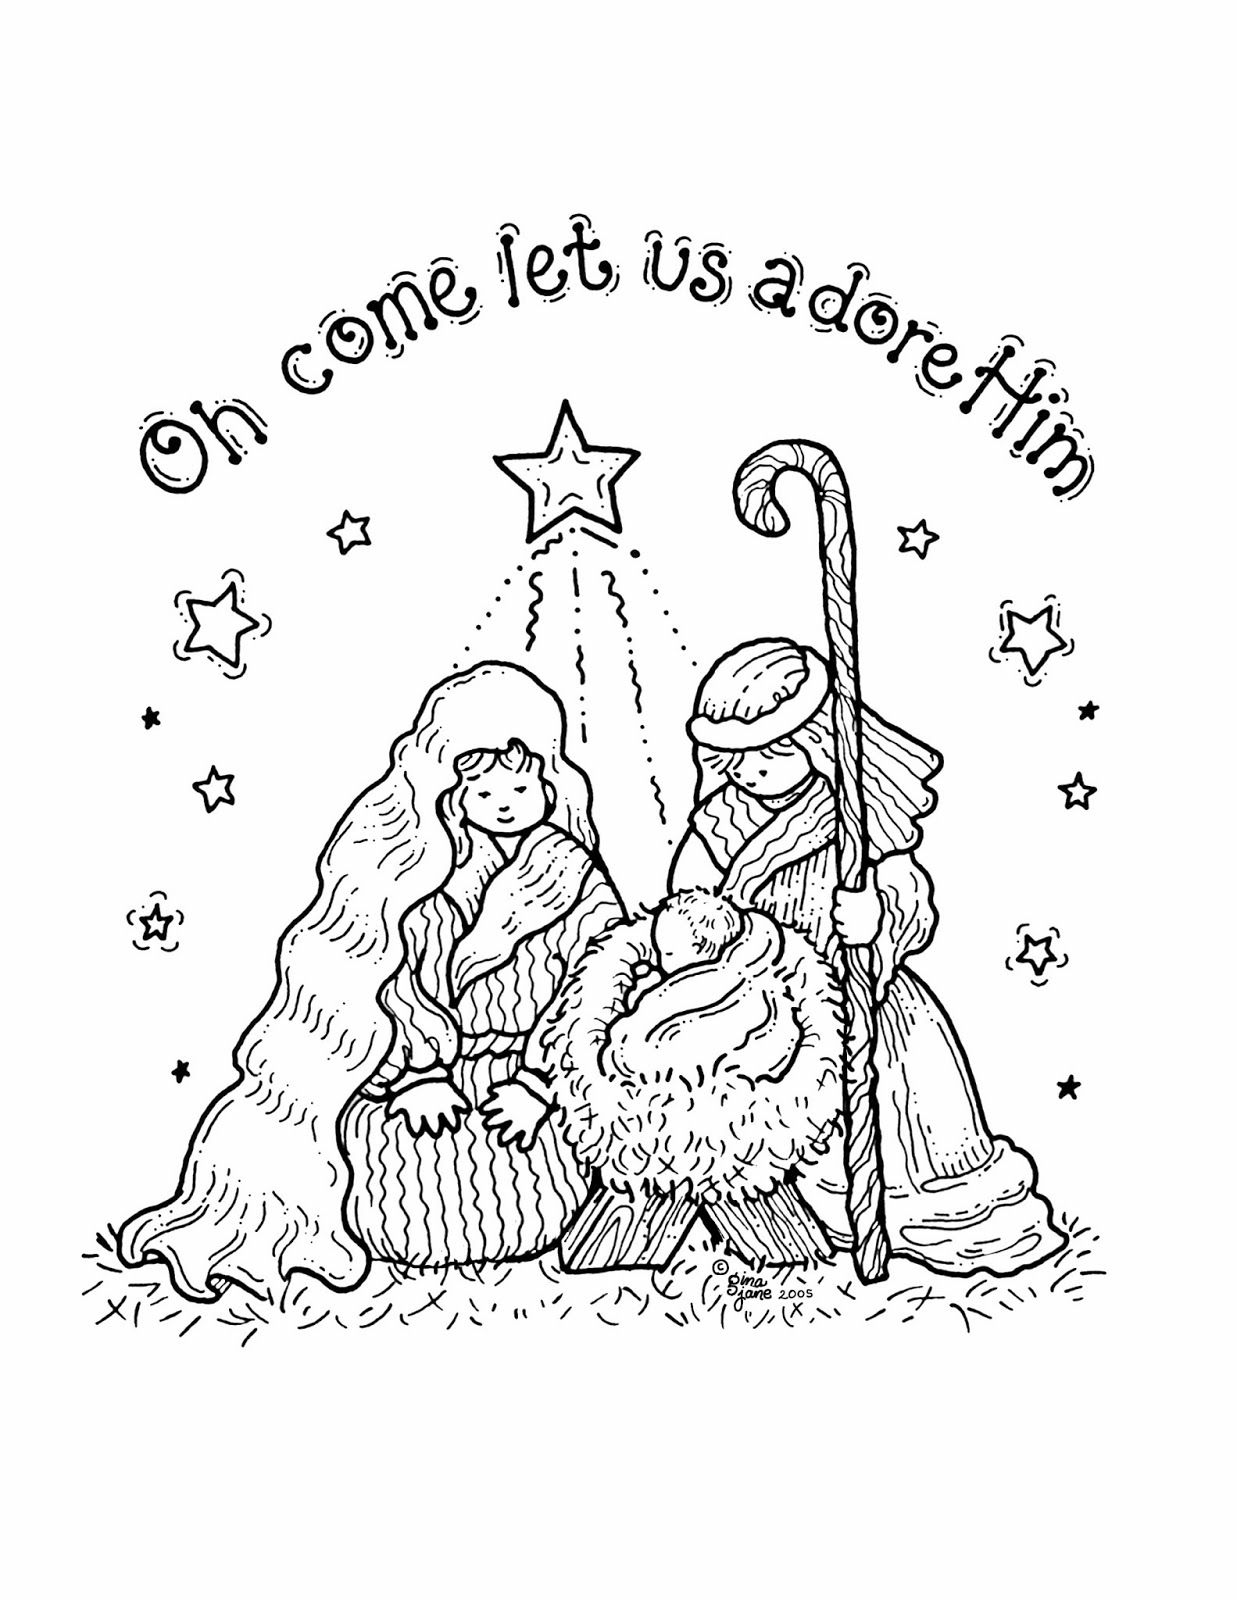 Use This Free Digital Clip Art Download Of Jesus Christ S Humble Birth In Bethlehem For Christma Nativity Coloring Pages Nativity Coloring Jesus Coloring Pages